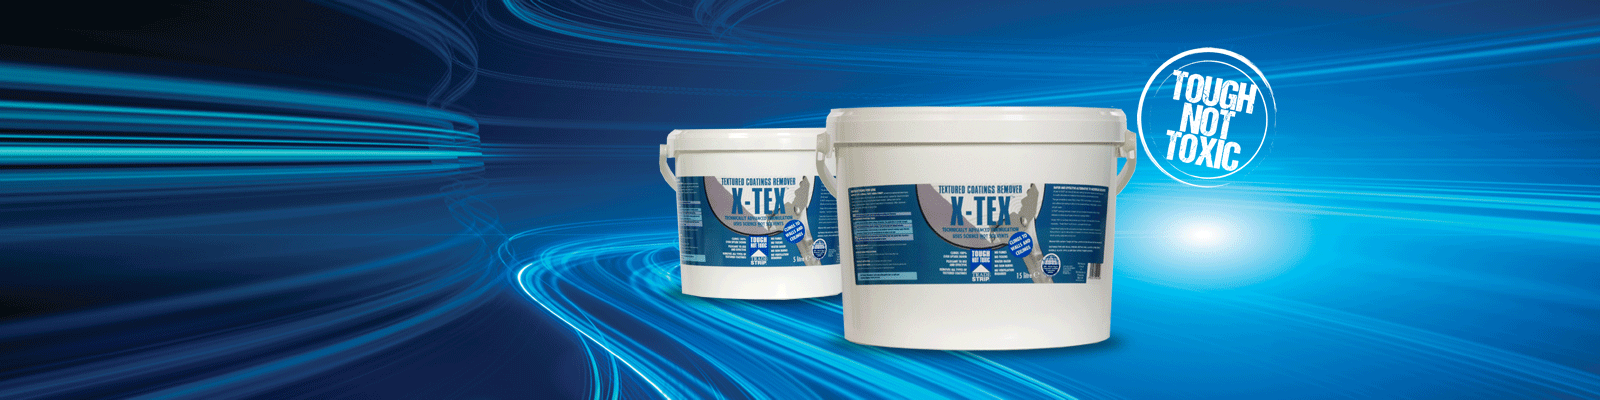 commercial artex remover UK